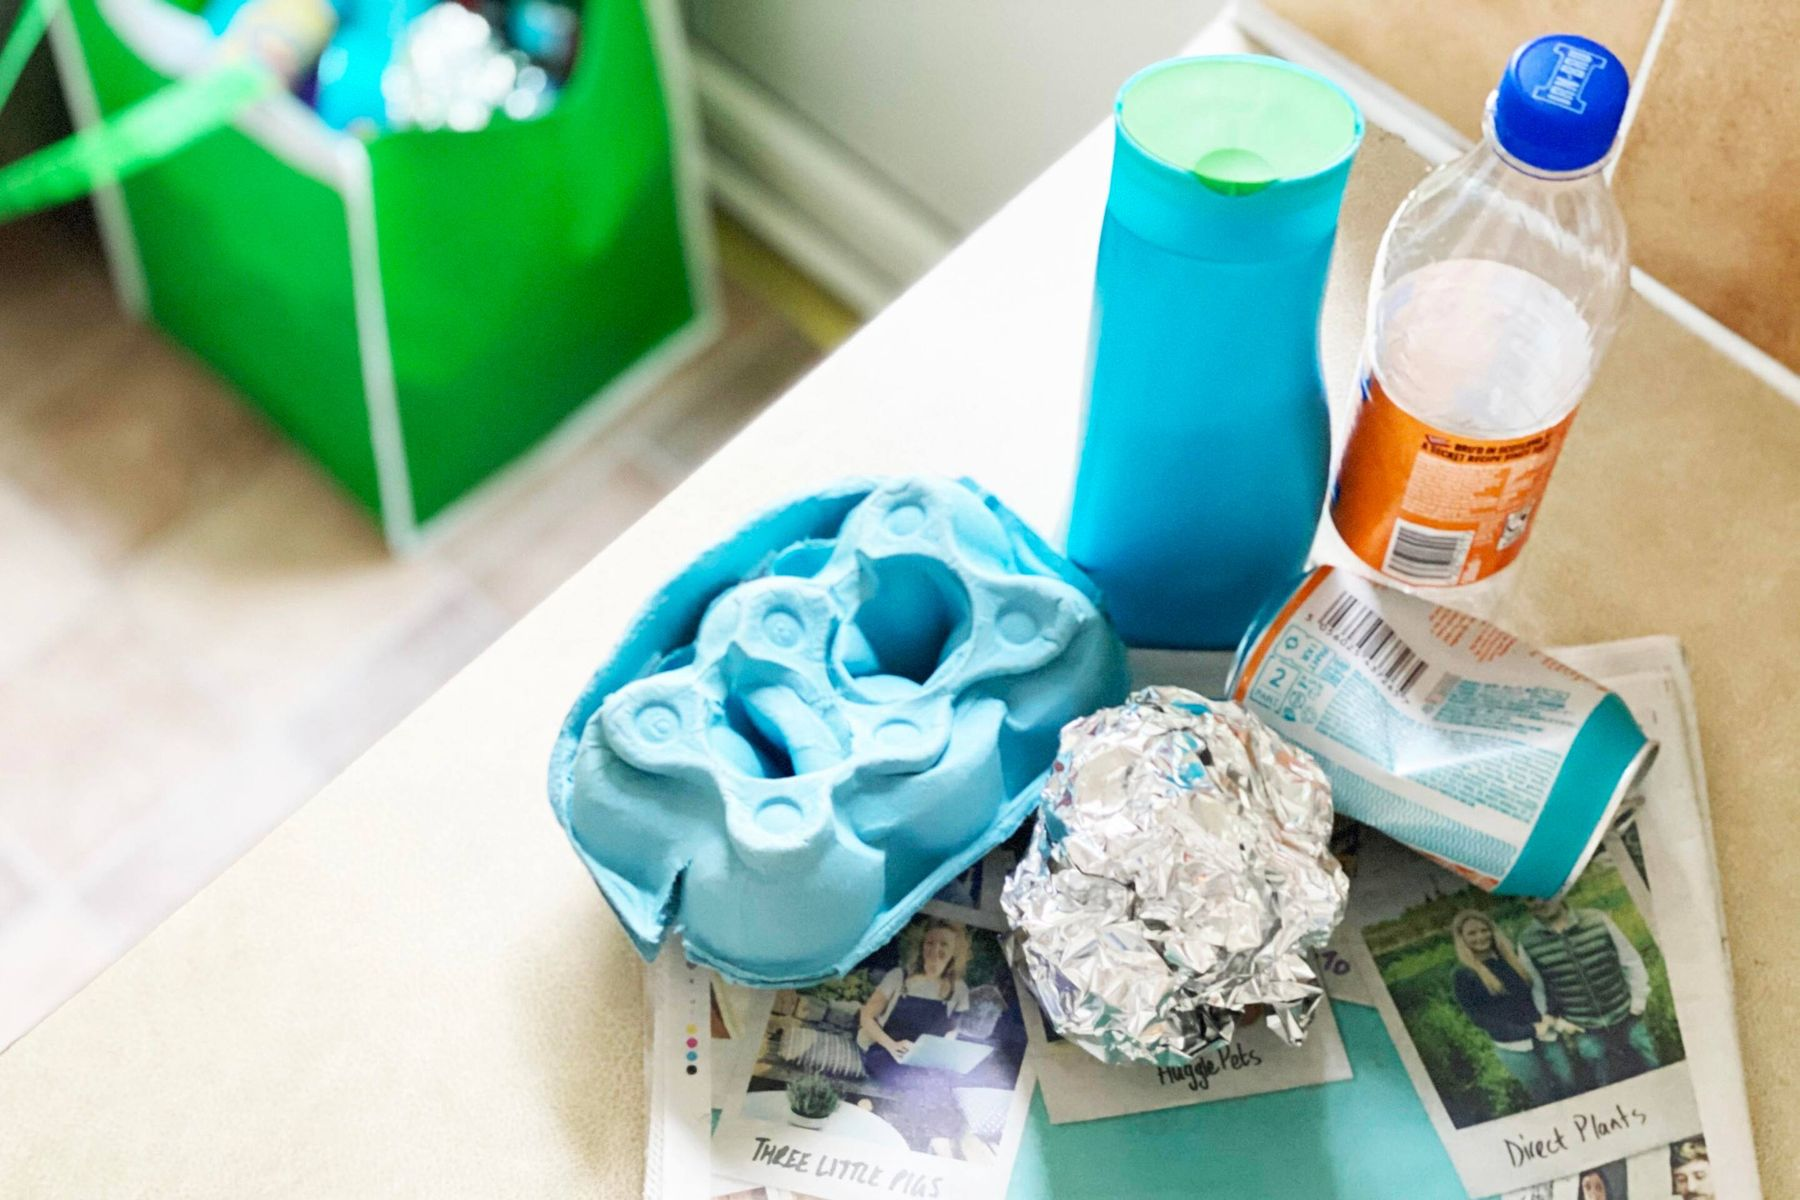 An egg carton, shampoo bottle, plastic bottle, drinks can, tinfoil and newspaper